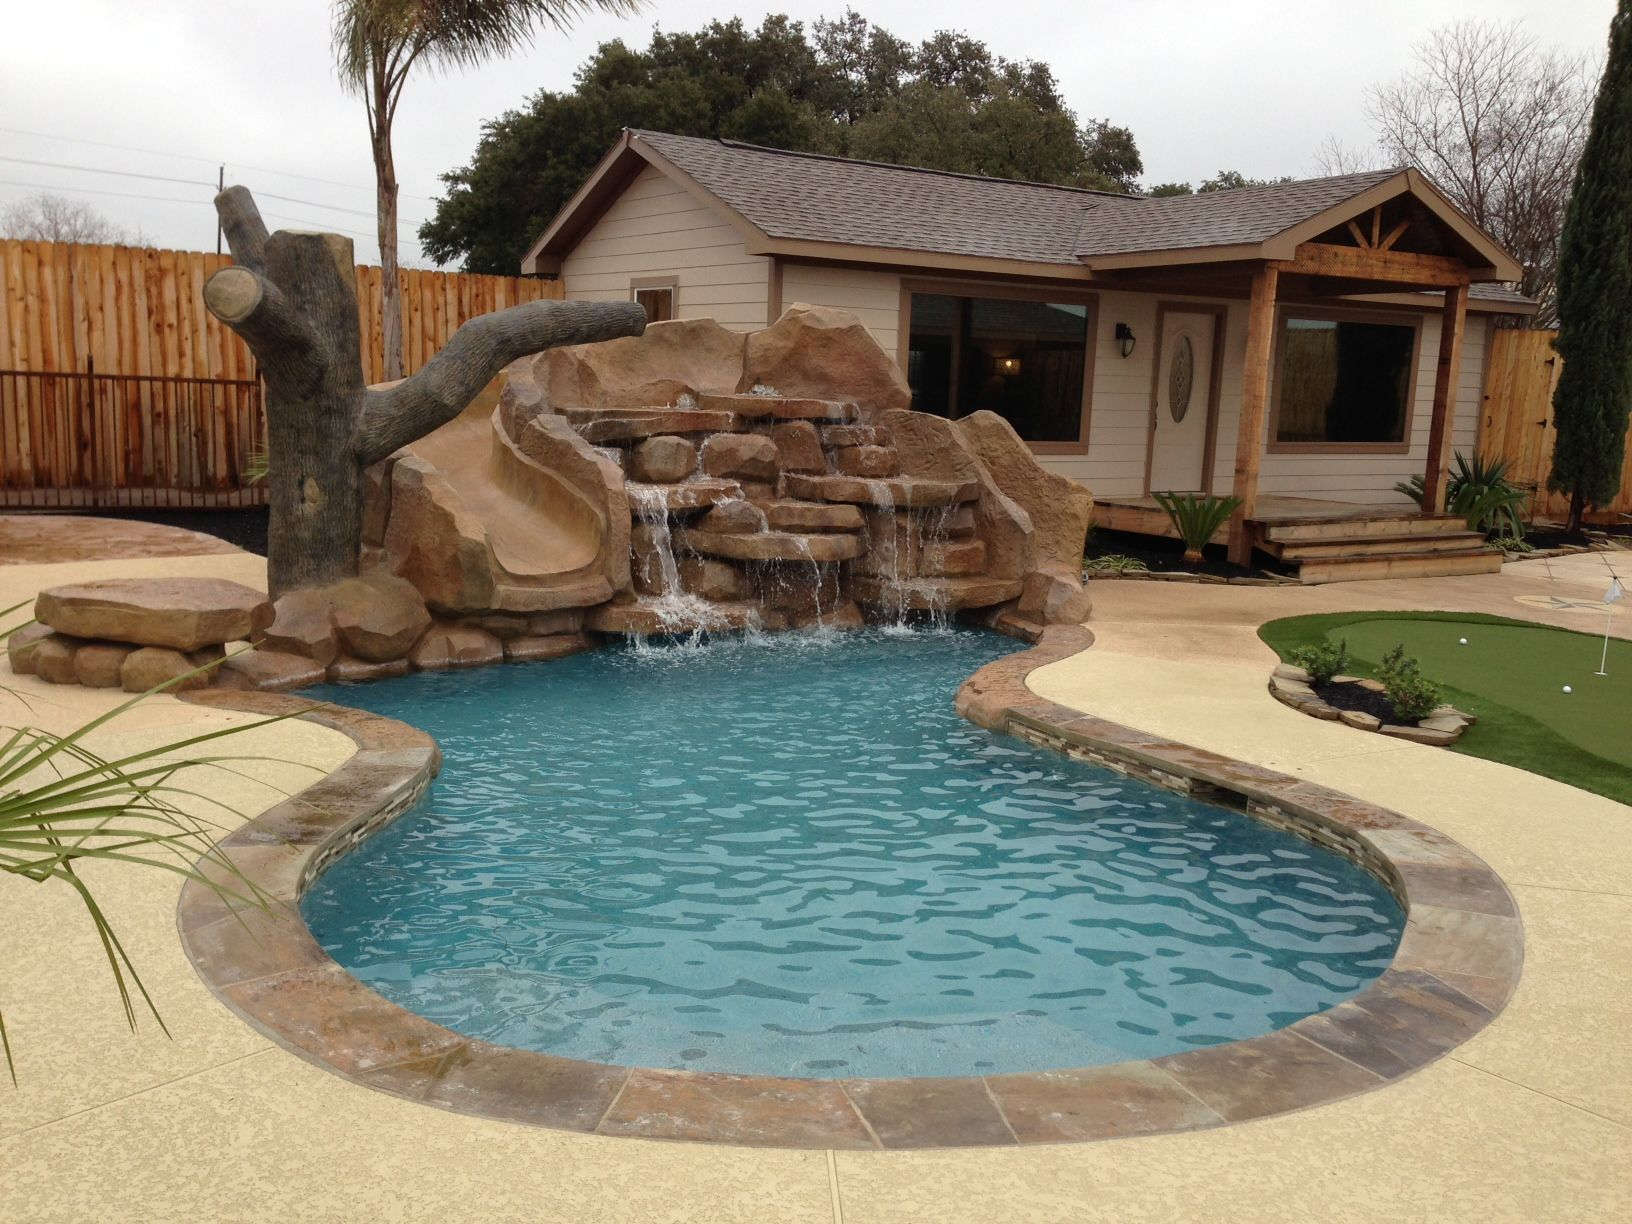 pool designs for small backyards this is can be one of the best backyard pool design - Backyard Pools Designs